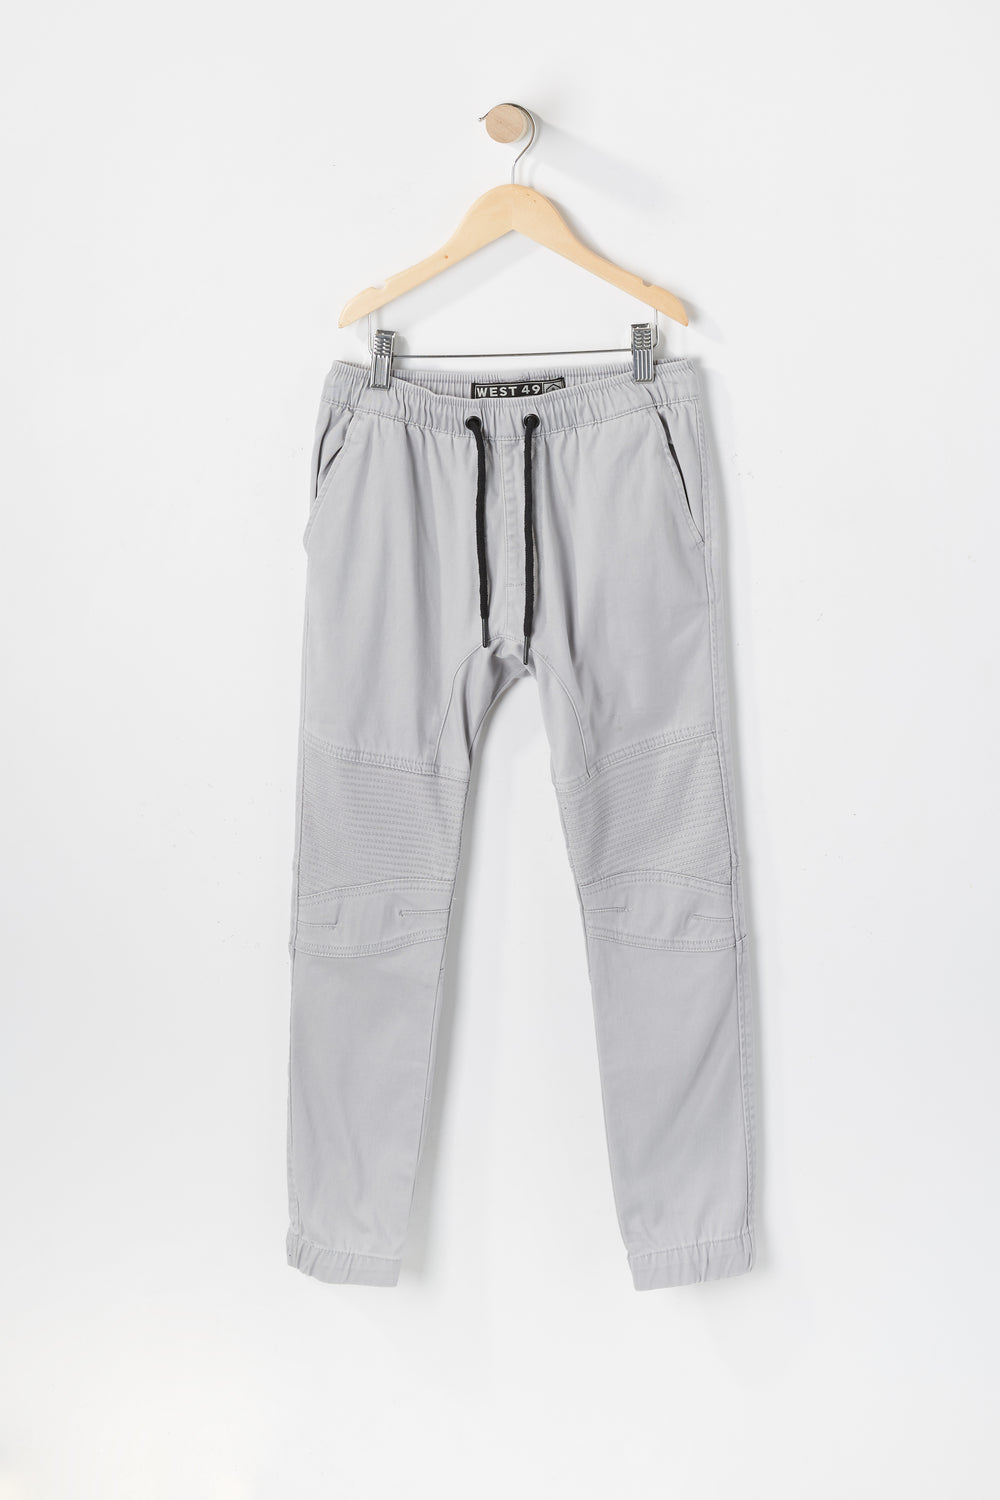 West49 Youth Solid Twill Moto Jogger Light Grey